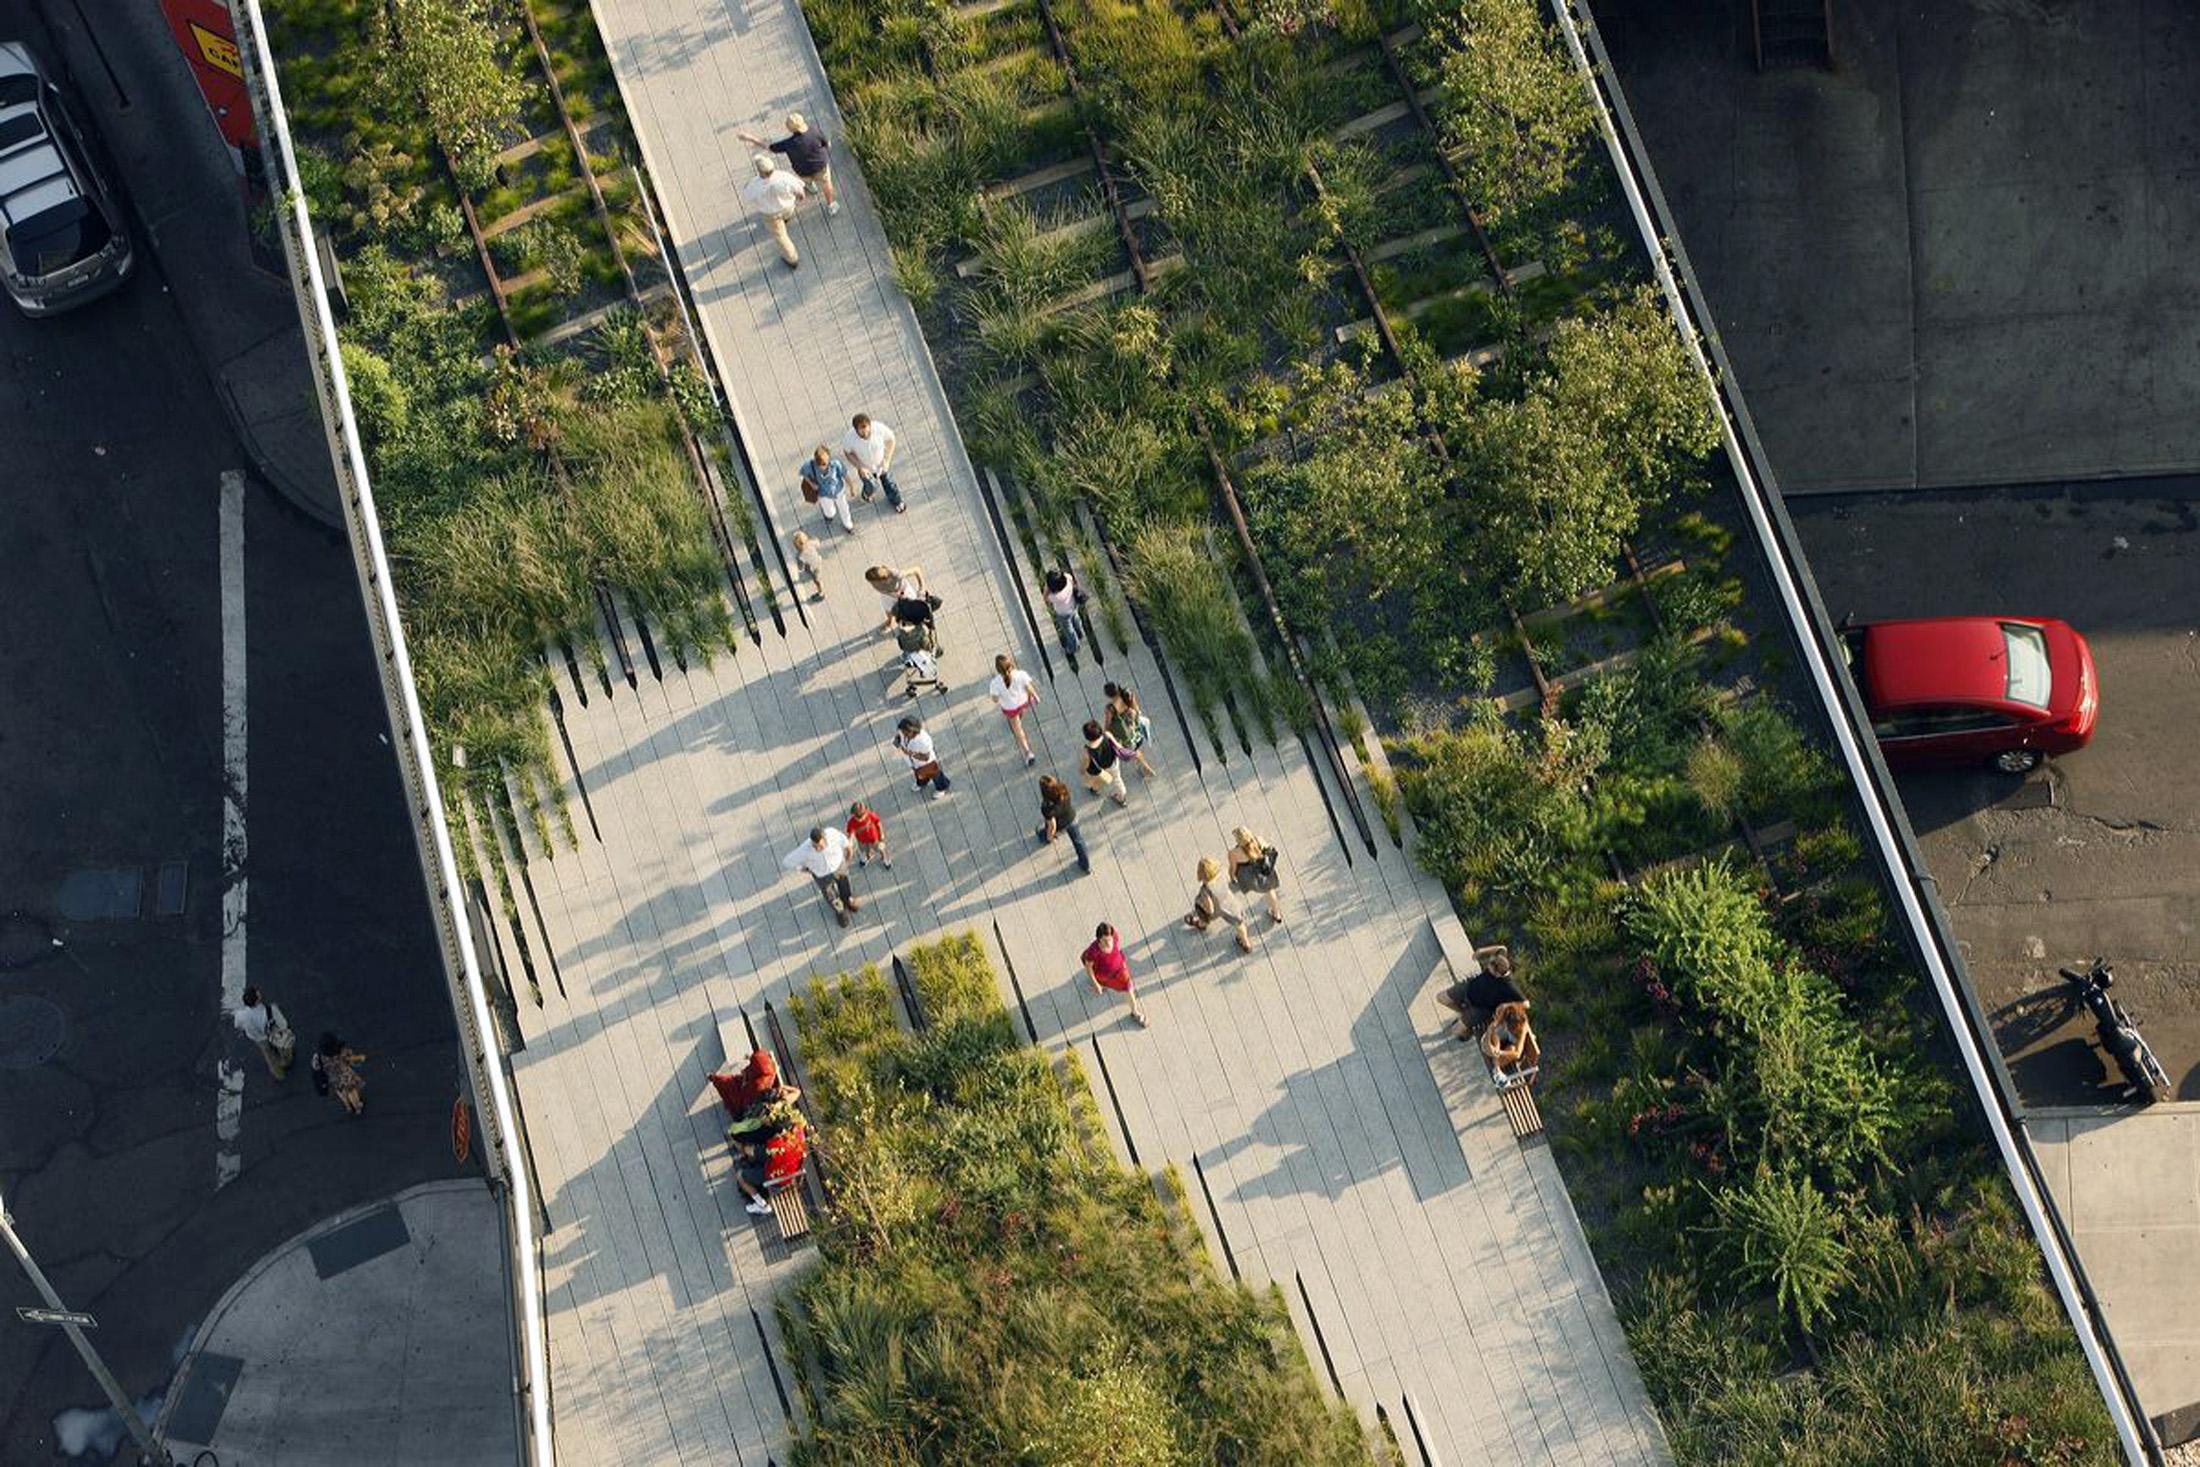 Aerial view of a linear, raised boardwalk with greenery and a handful of people